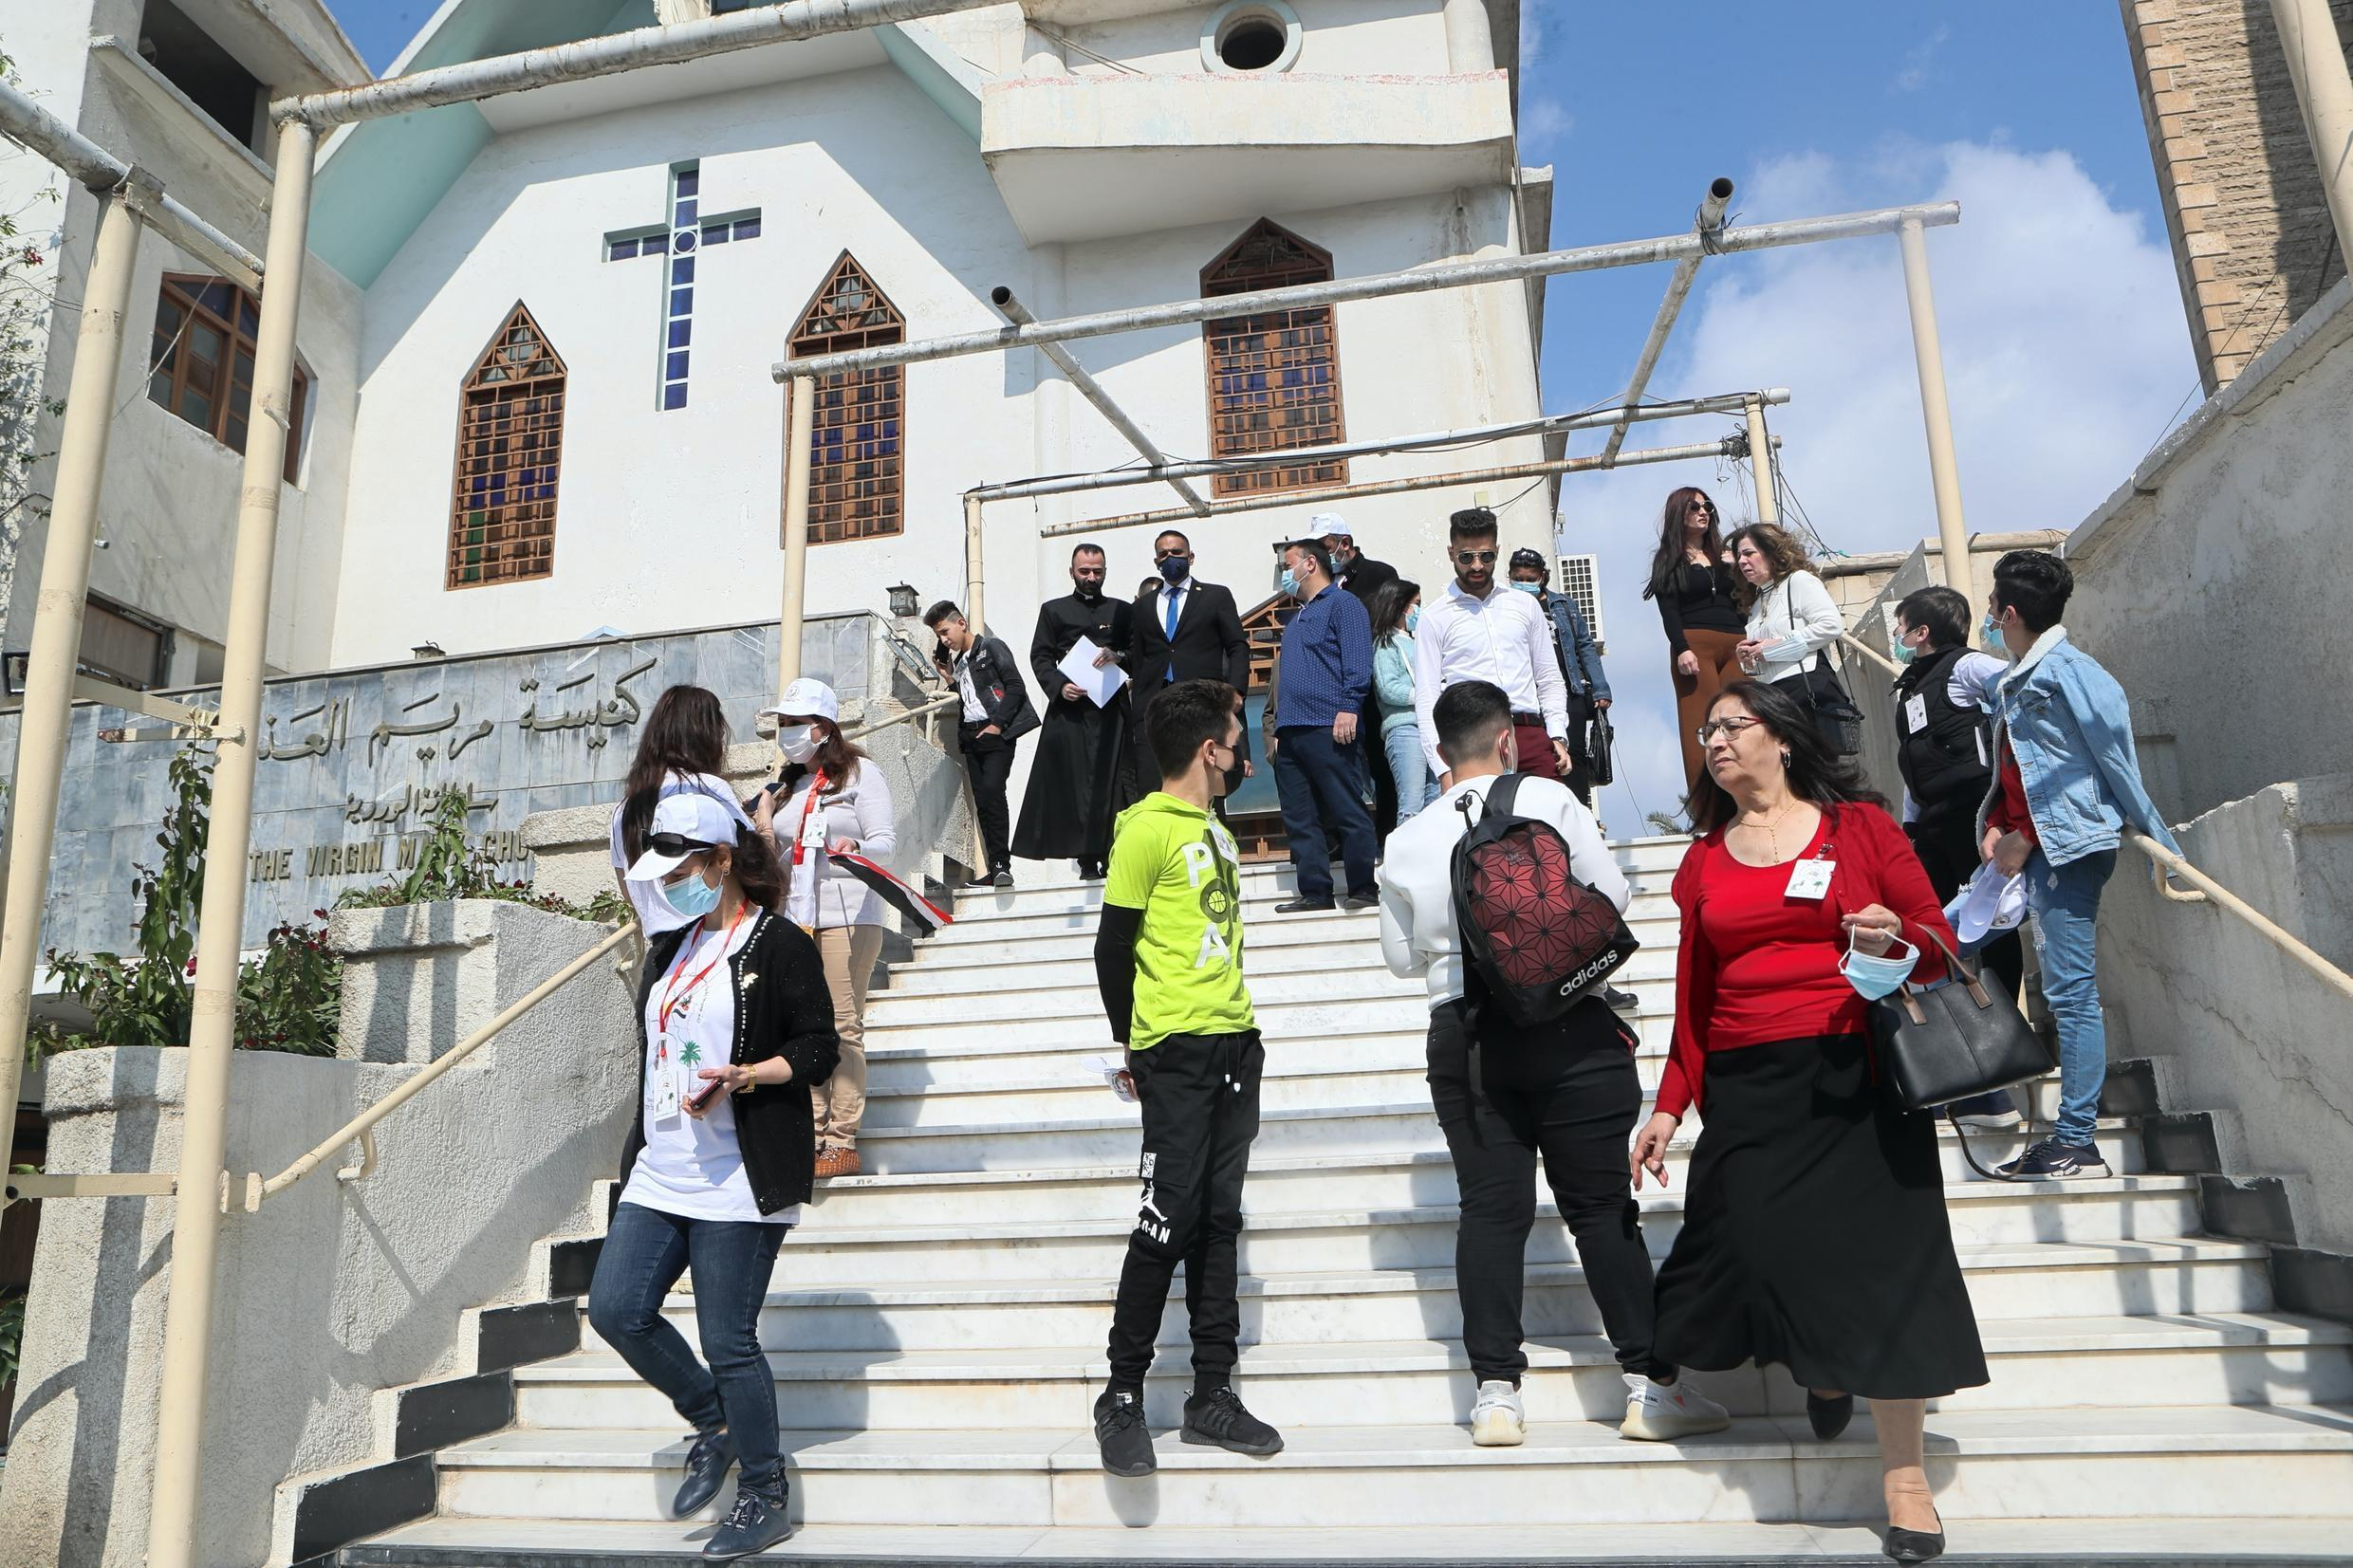 Iraqi Christians gather at the Church of the Virgin Mary before going to the airport to welcome the Pope in Baghdad Iraq Friday